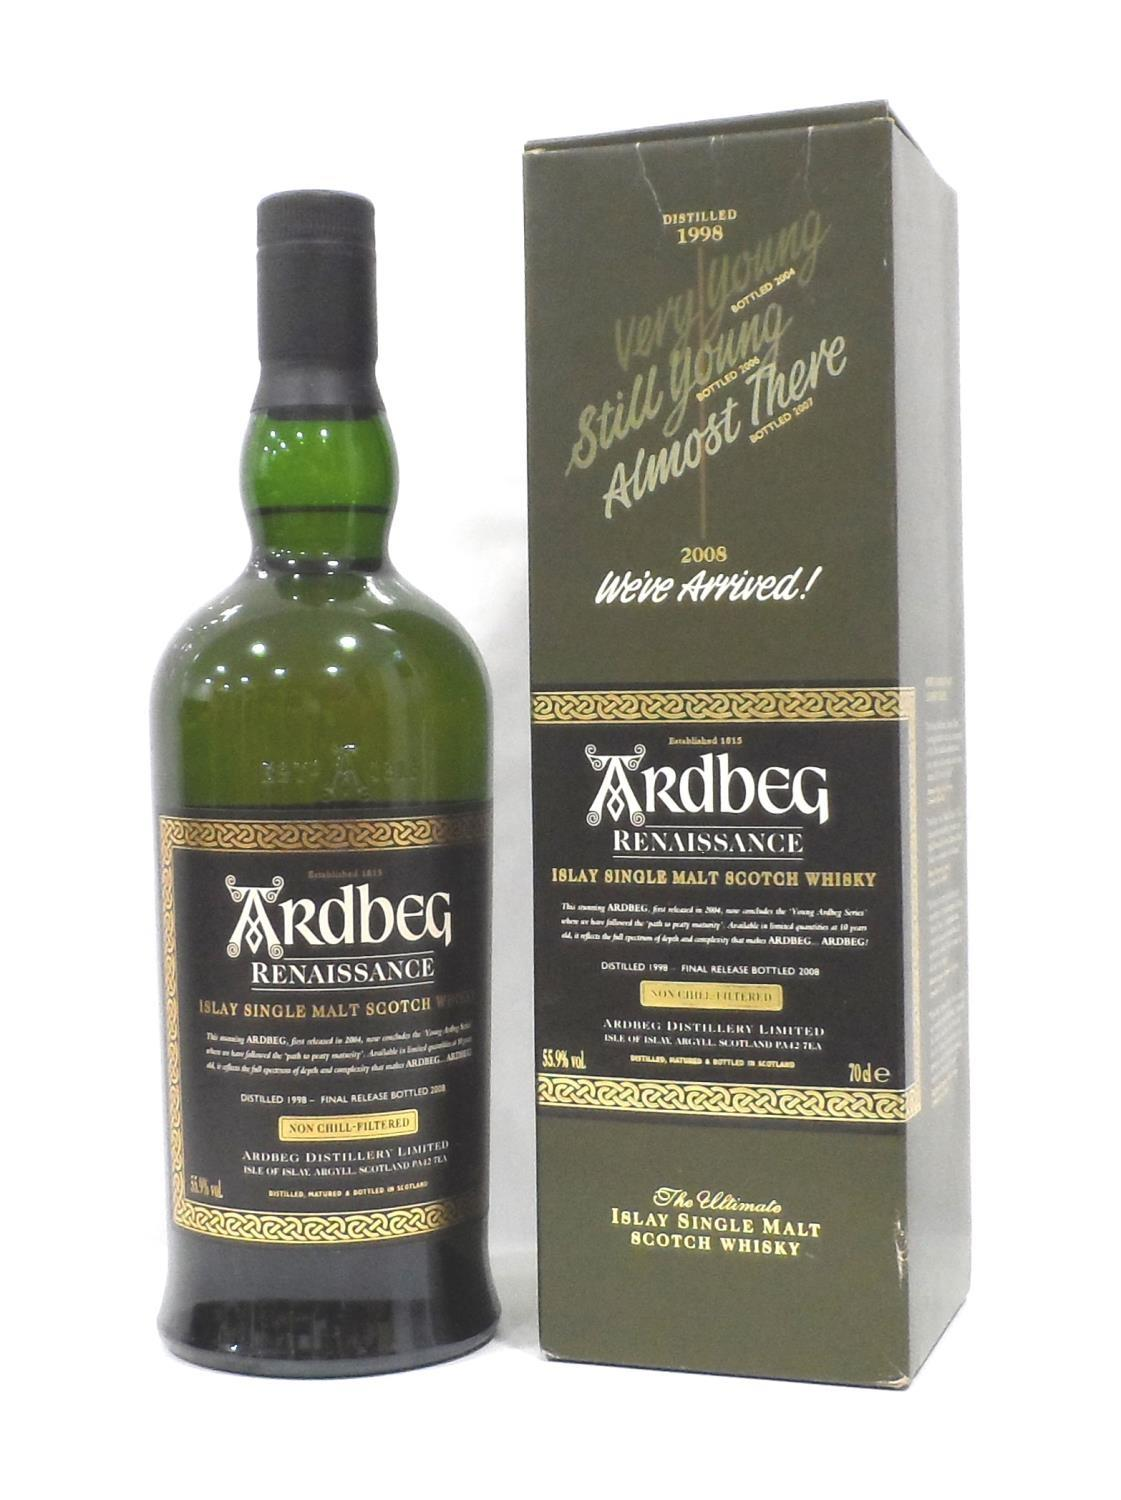 ARDBEG RENAISSANCE The final instalment in the series celebrating the reappearance of the Ten Year